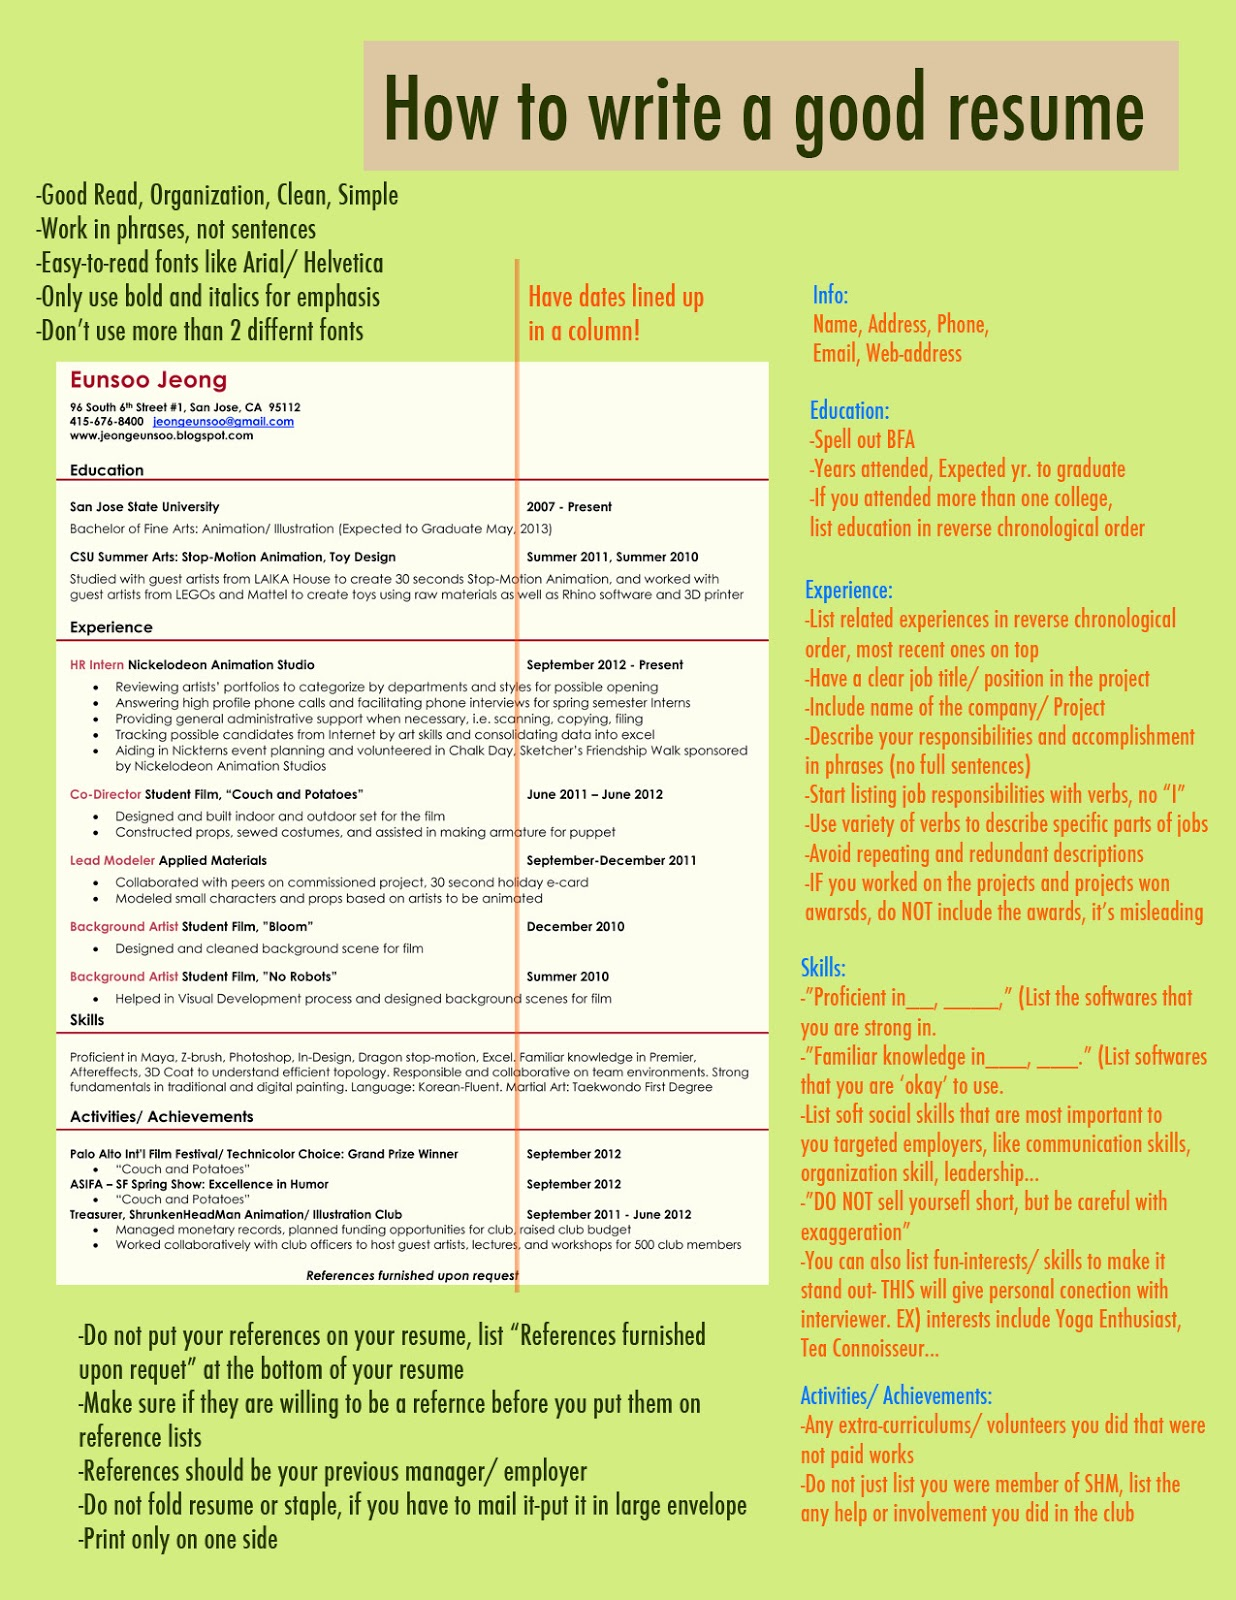 Writing A Good Resume Made In Korea 1988 How To Write A Good Resume